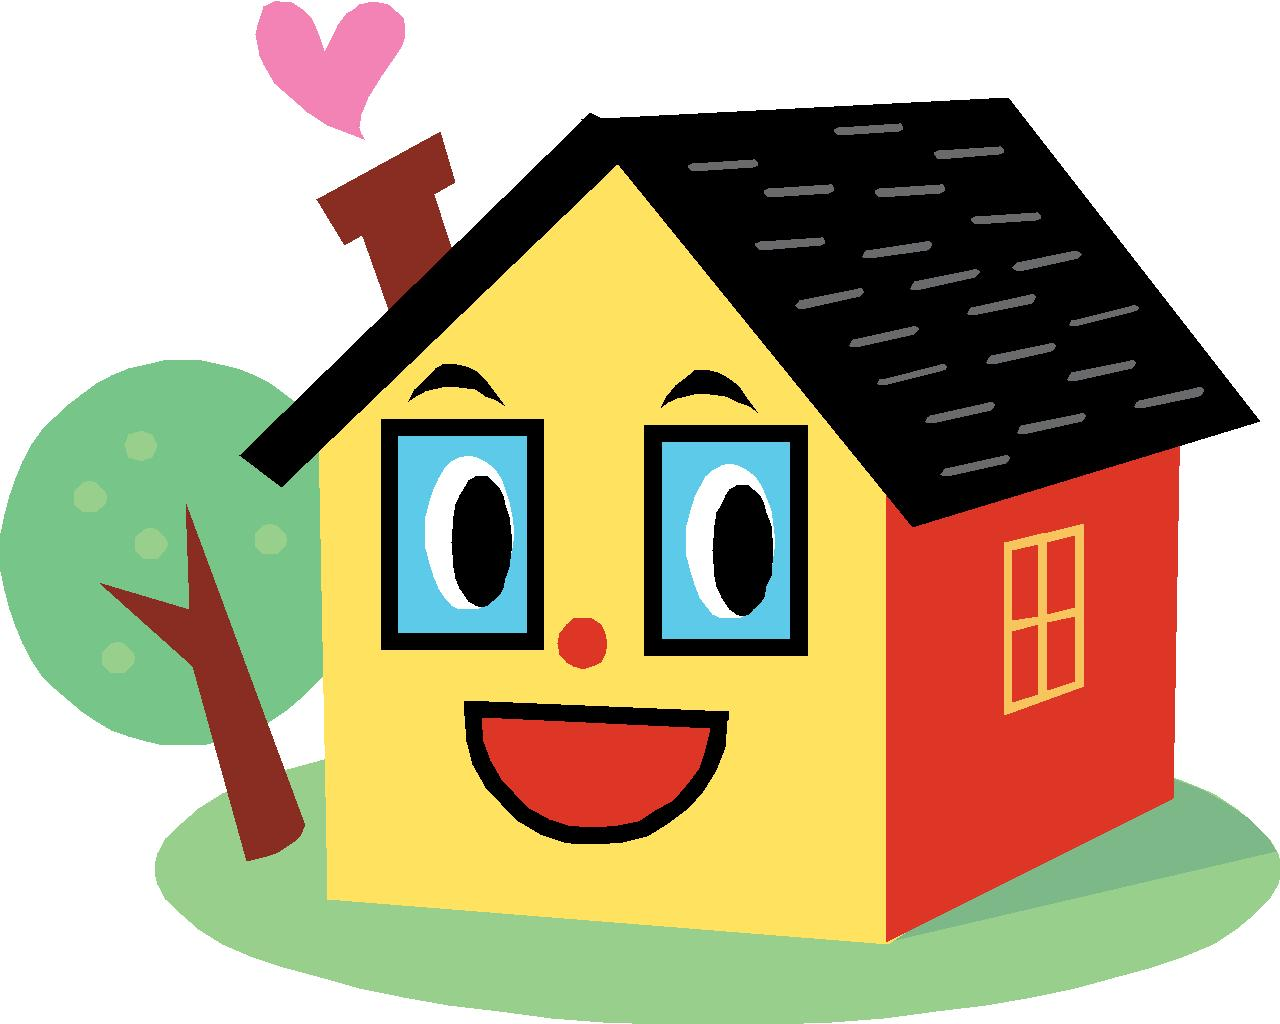 Clipart happy home image library Free Happy House Cliparts, Download Free Clip Art, Free Clip Art on ... image library